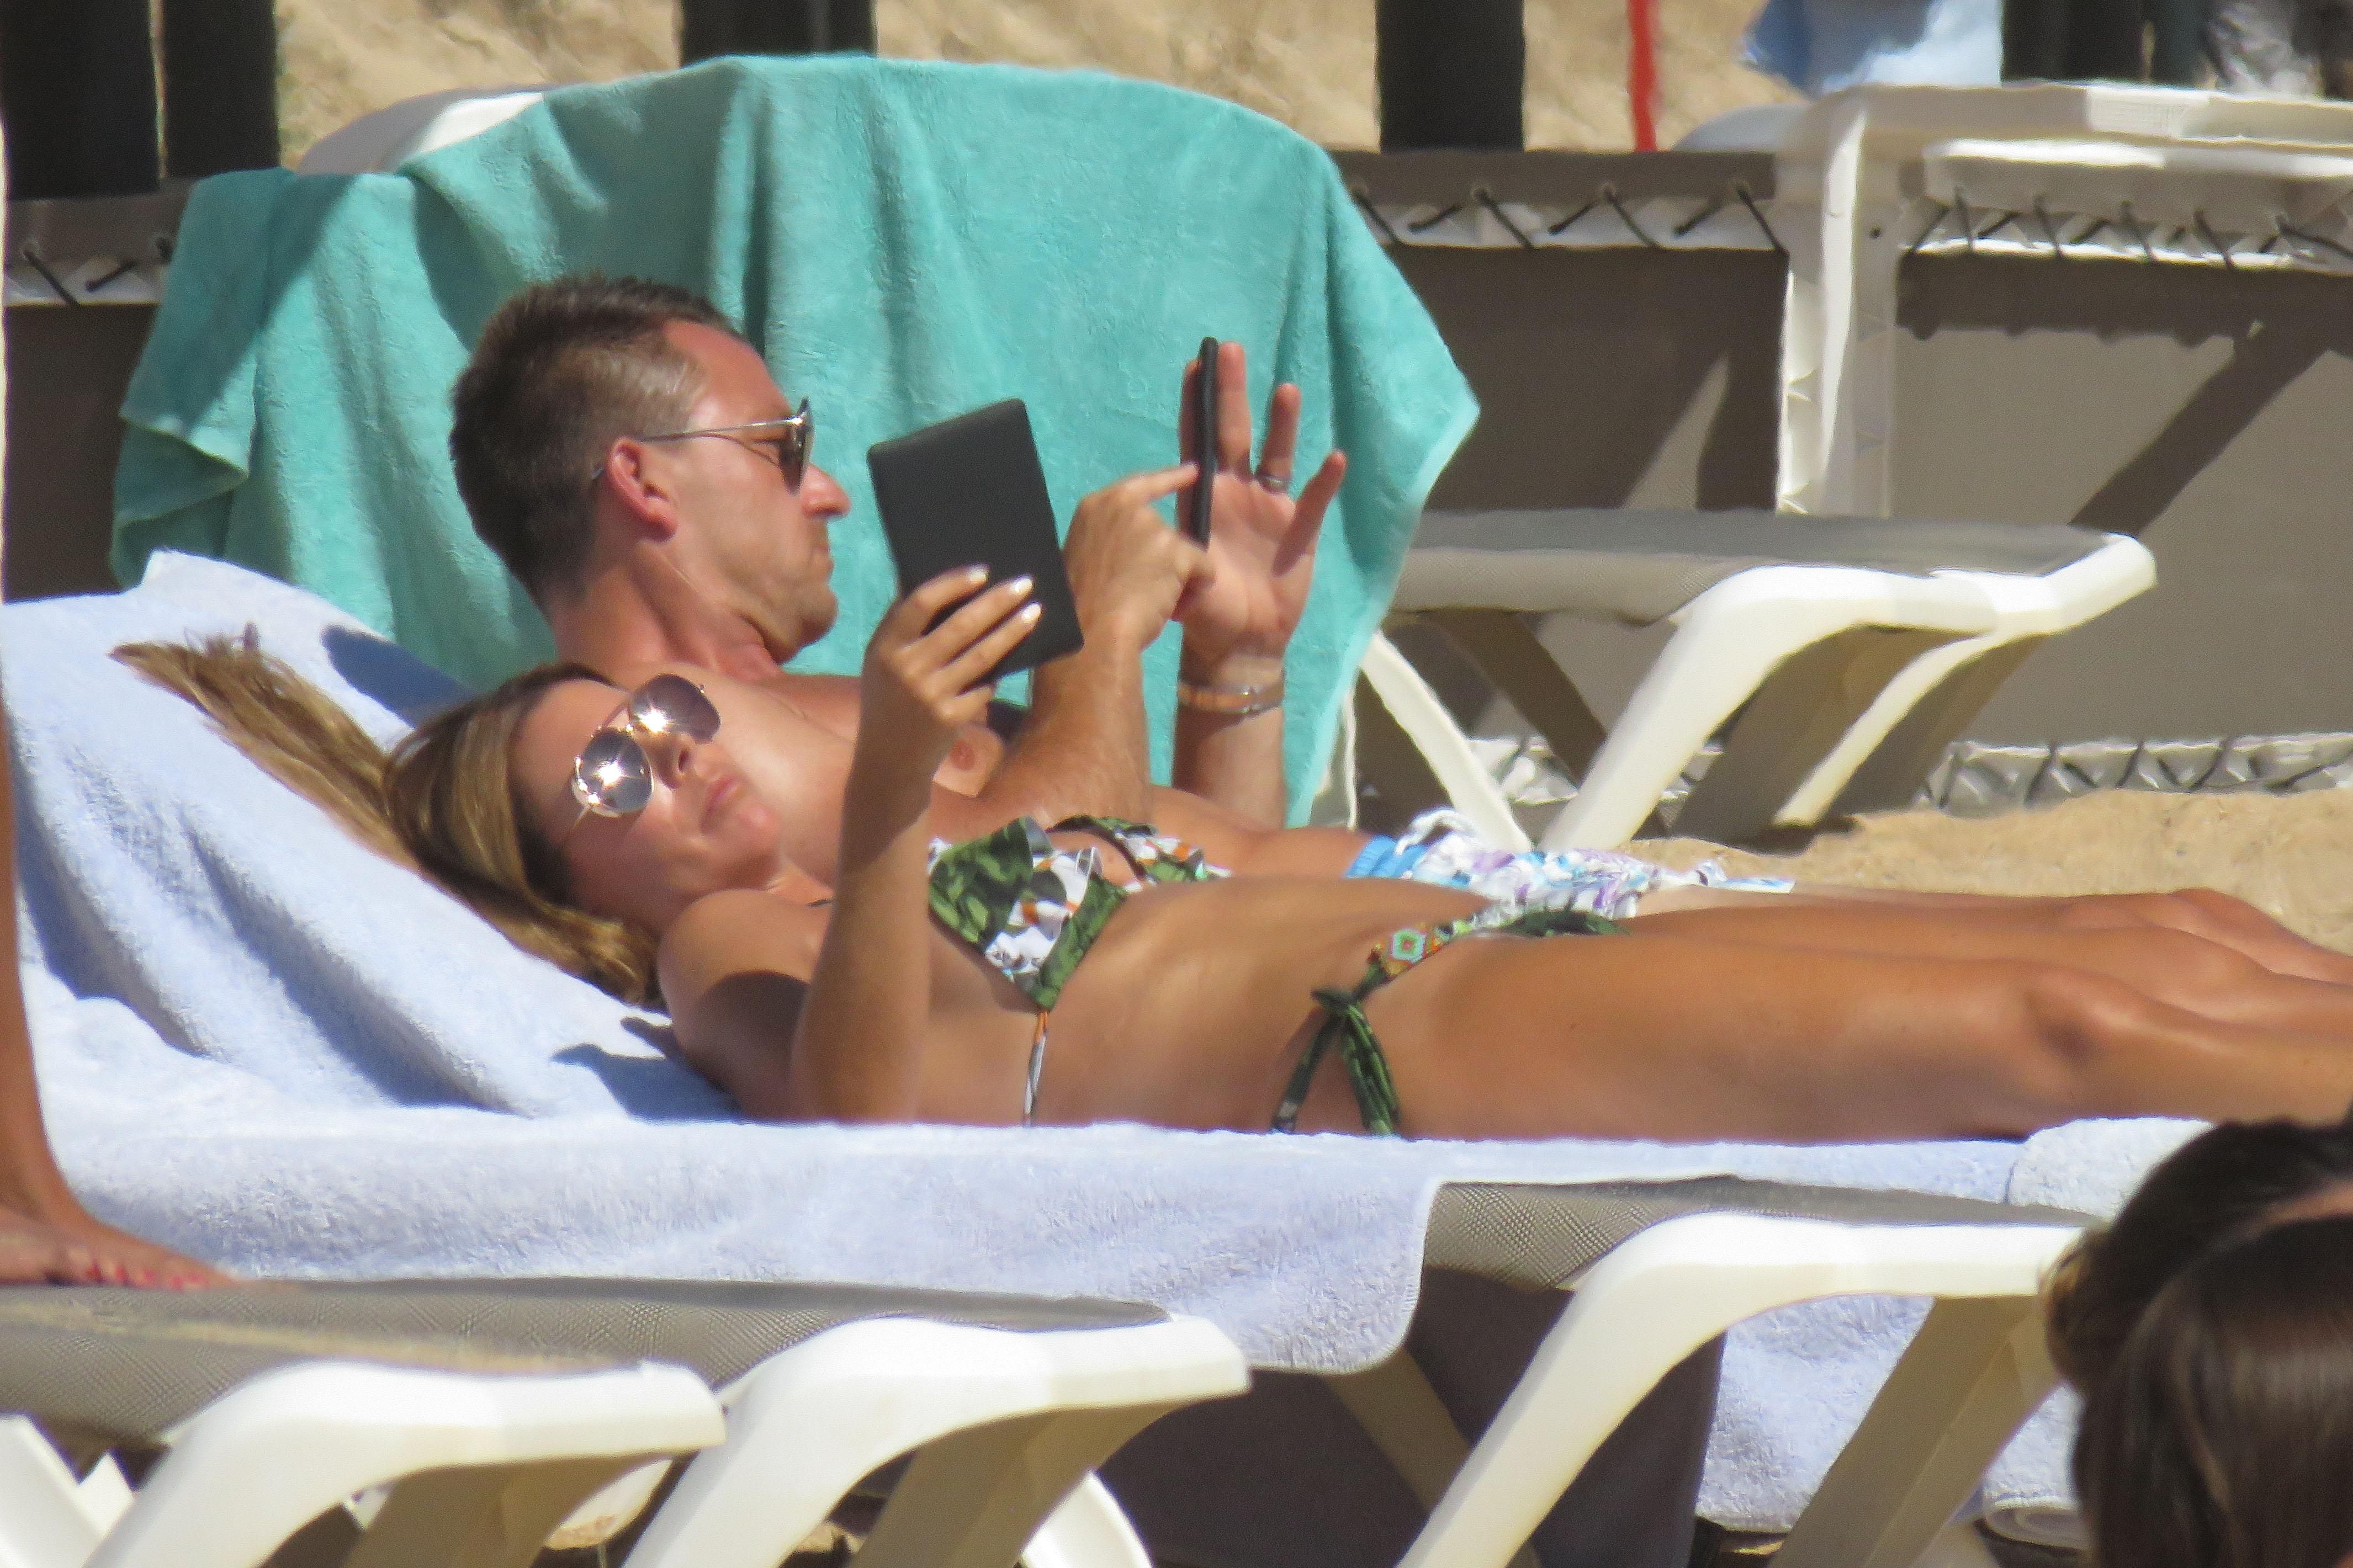 The couple relaxed on the sunbeds during their holiday in Portugal